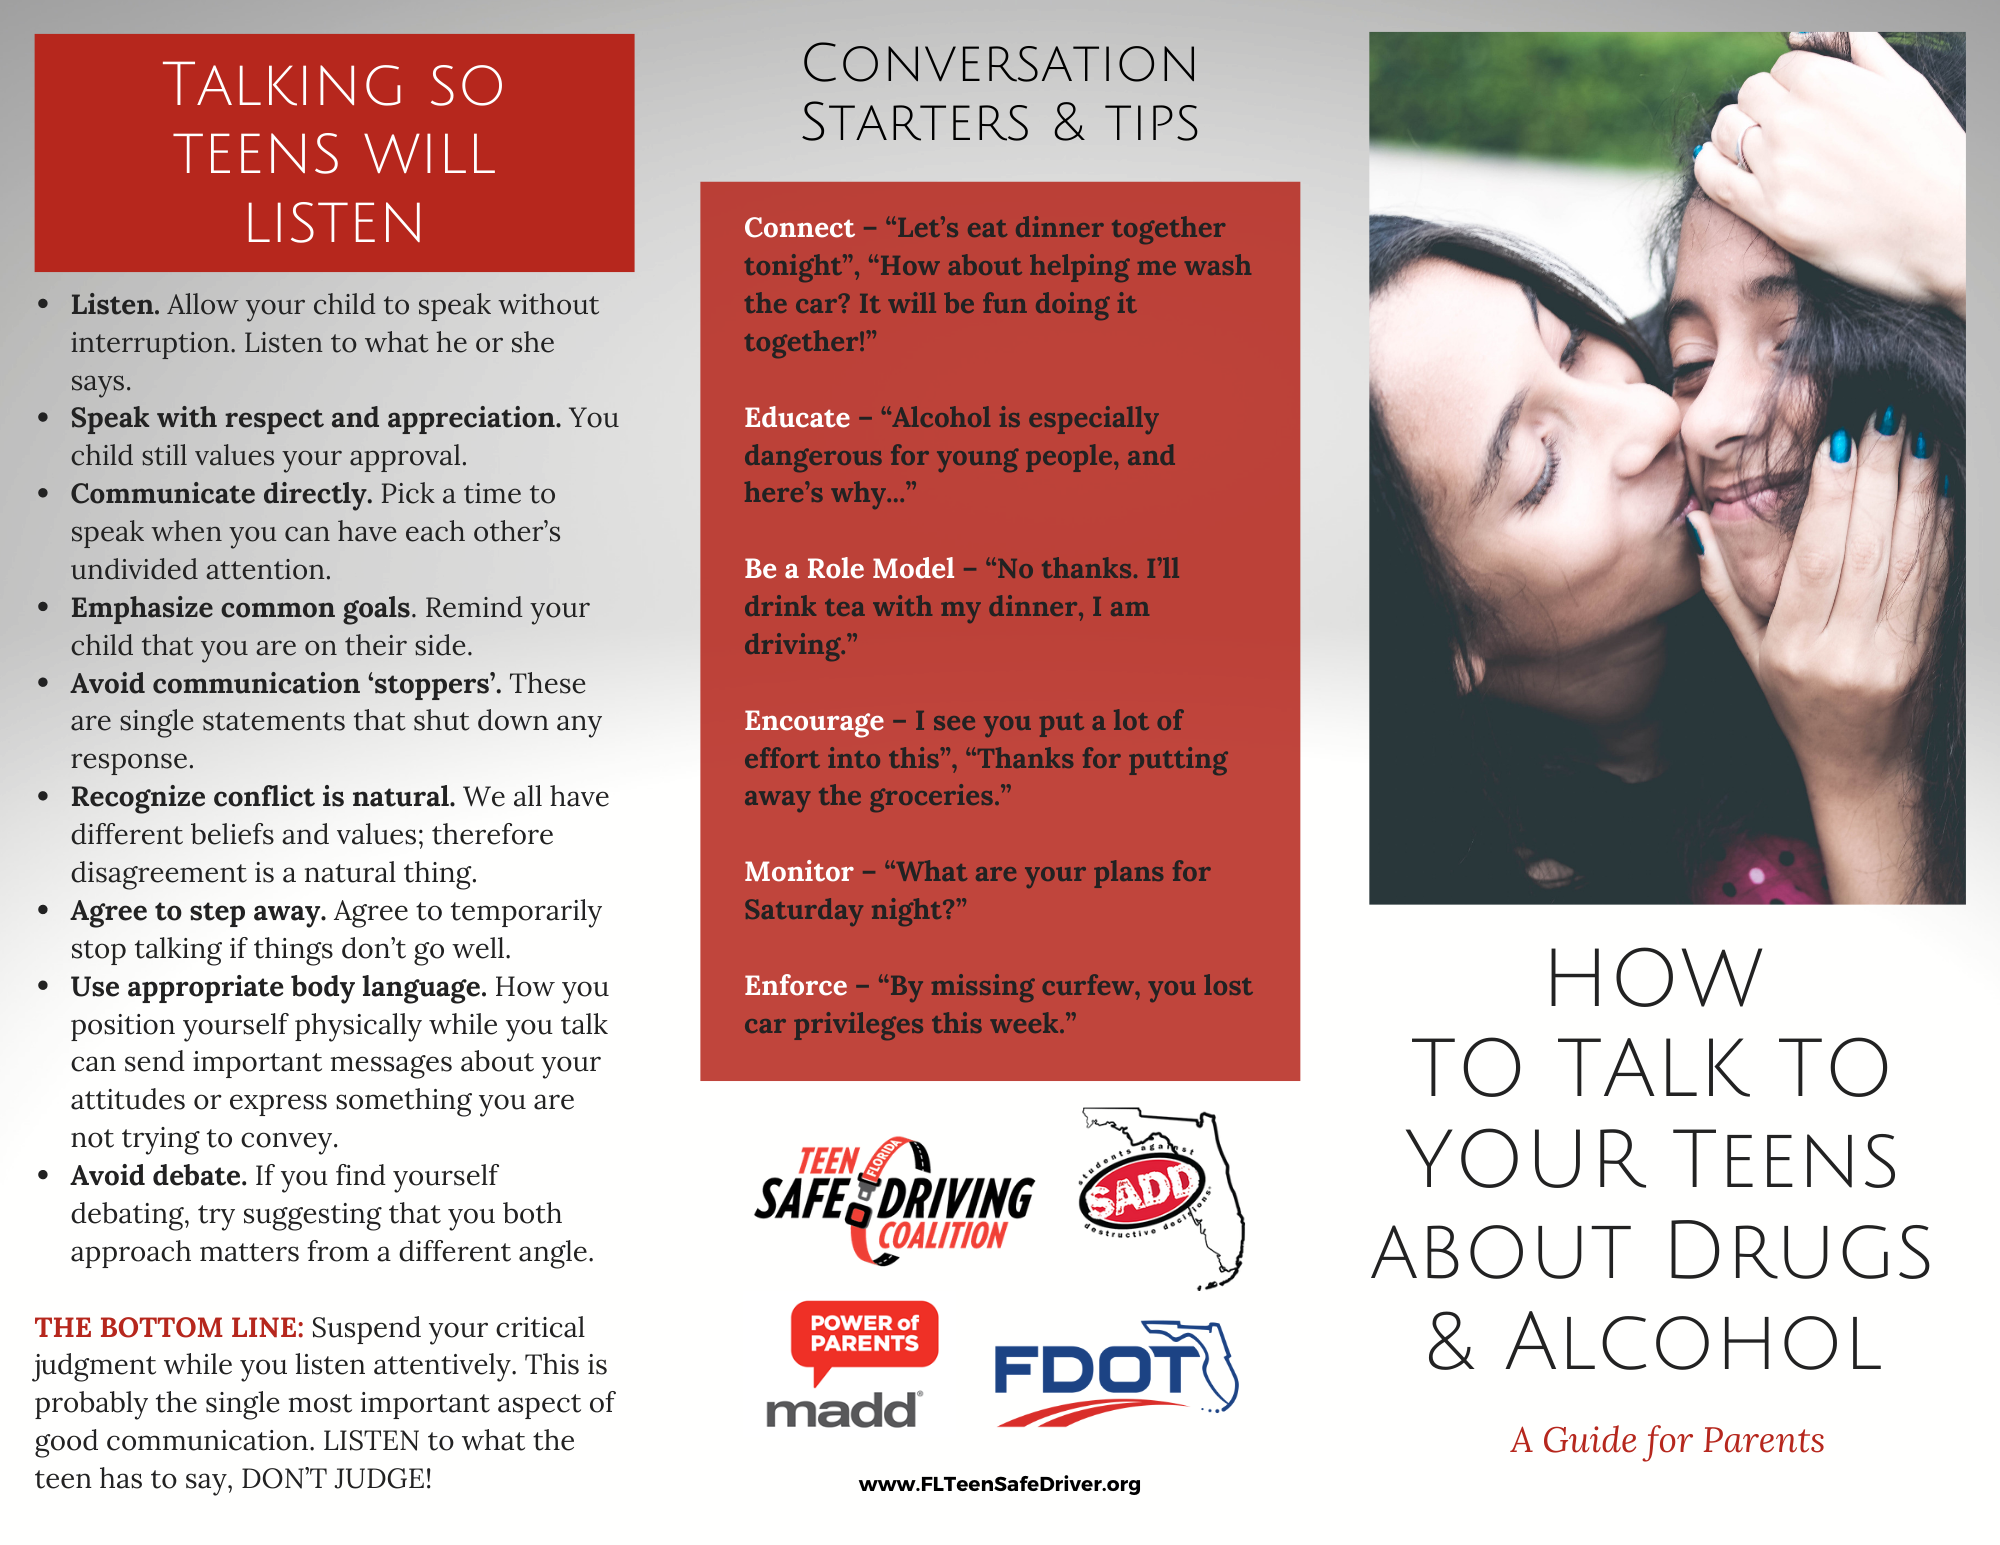 How to talk to your teens about drugs and alcohol brochure 1